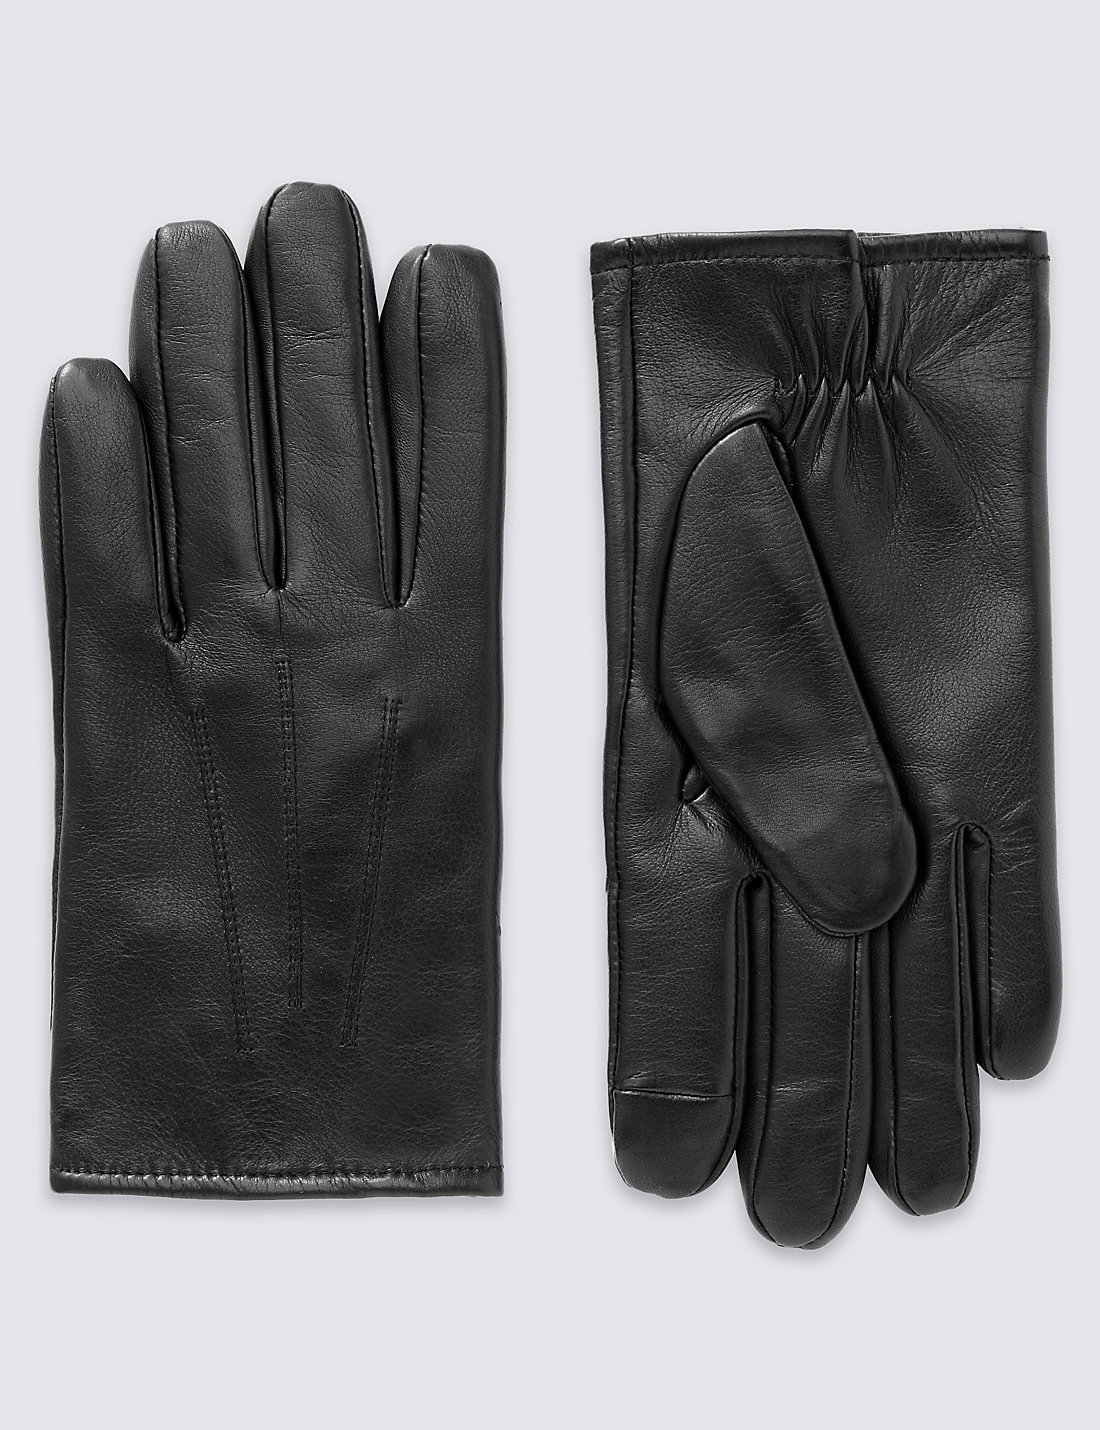 Black leather uniform gloves - Leather Gloves With Thinsulate